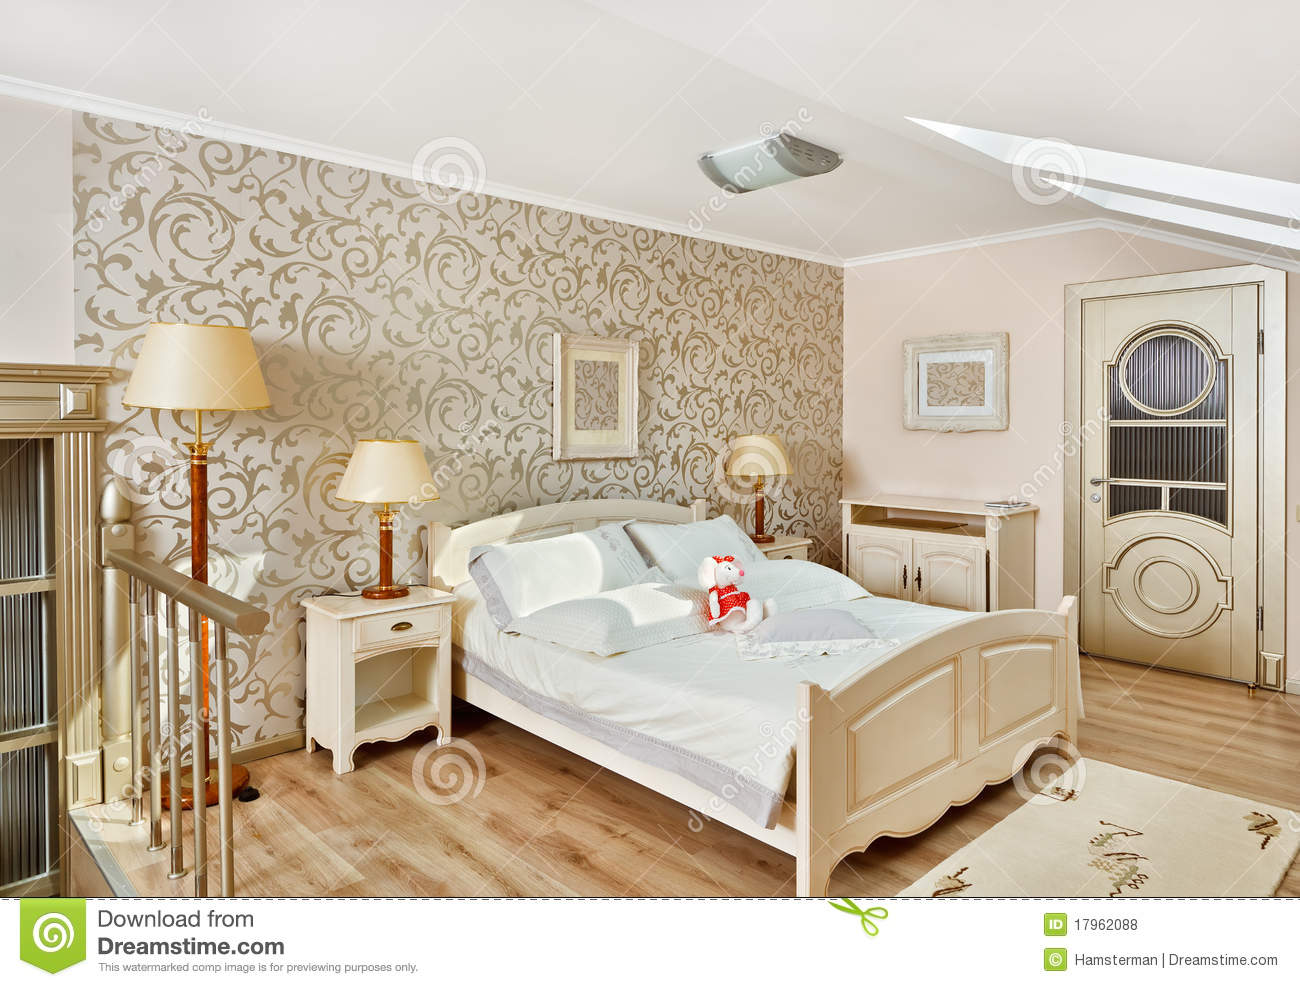 Modern style bedroom in beigeon loft room royalty free stock photos image 17962088 - Deco romantische kamer beige ...